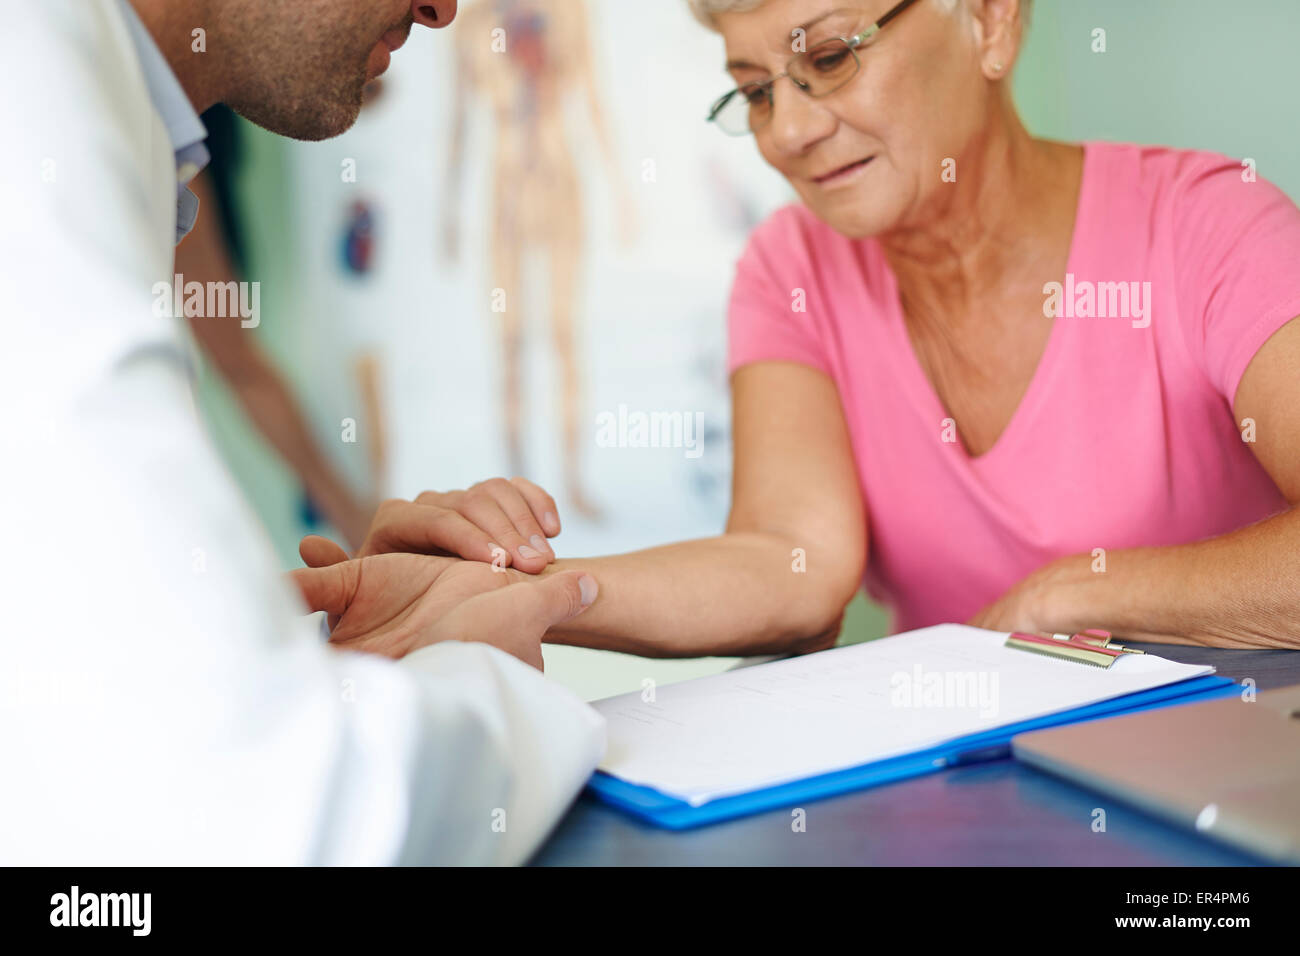 Testing pressure in doctor's office. Debica, Poland Stock Photo